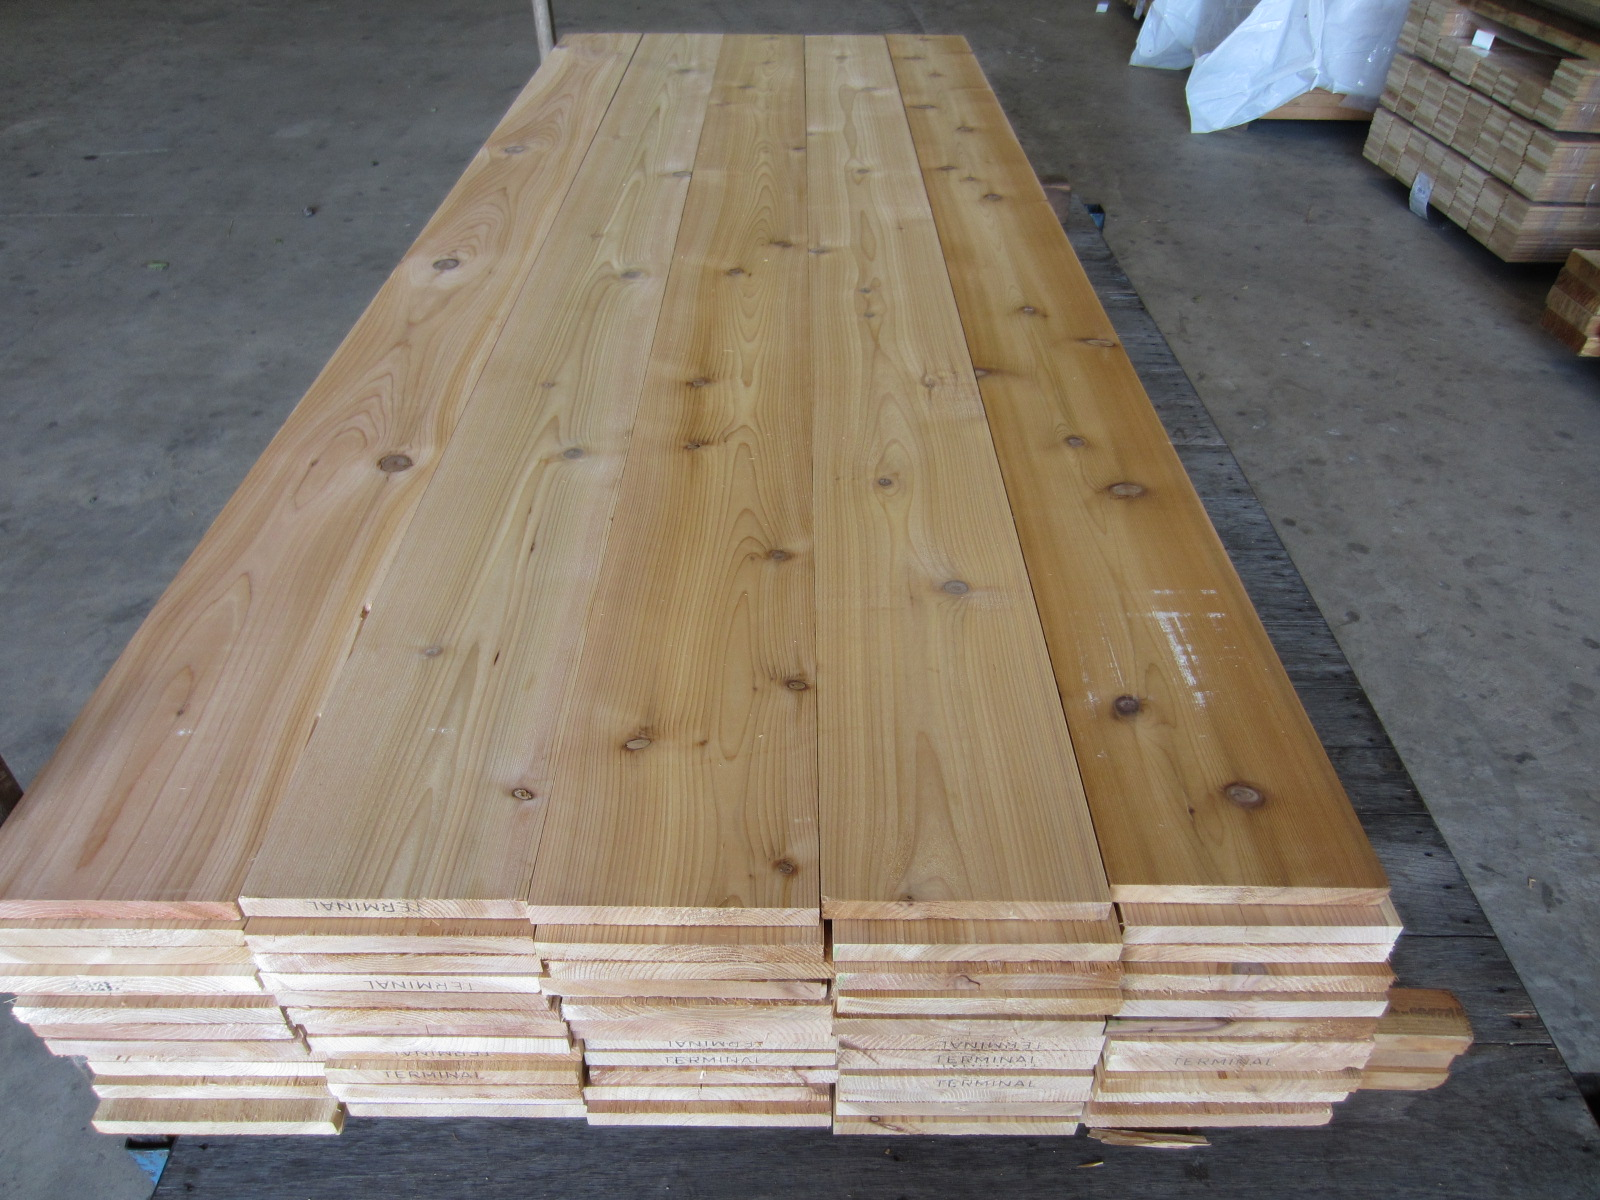 Western Red Cedar Timbers And Lumber Grade Pictures